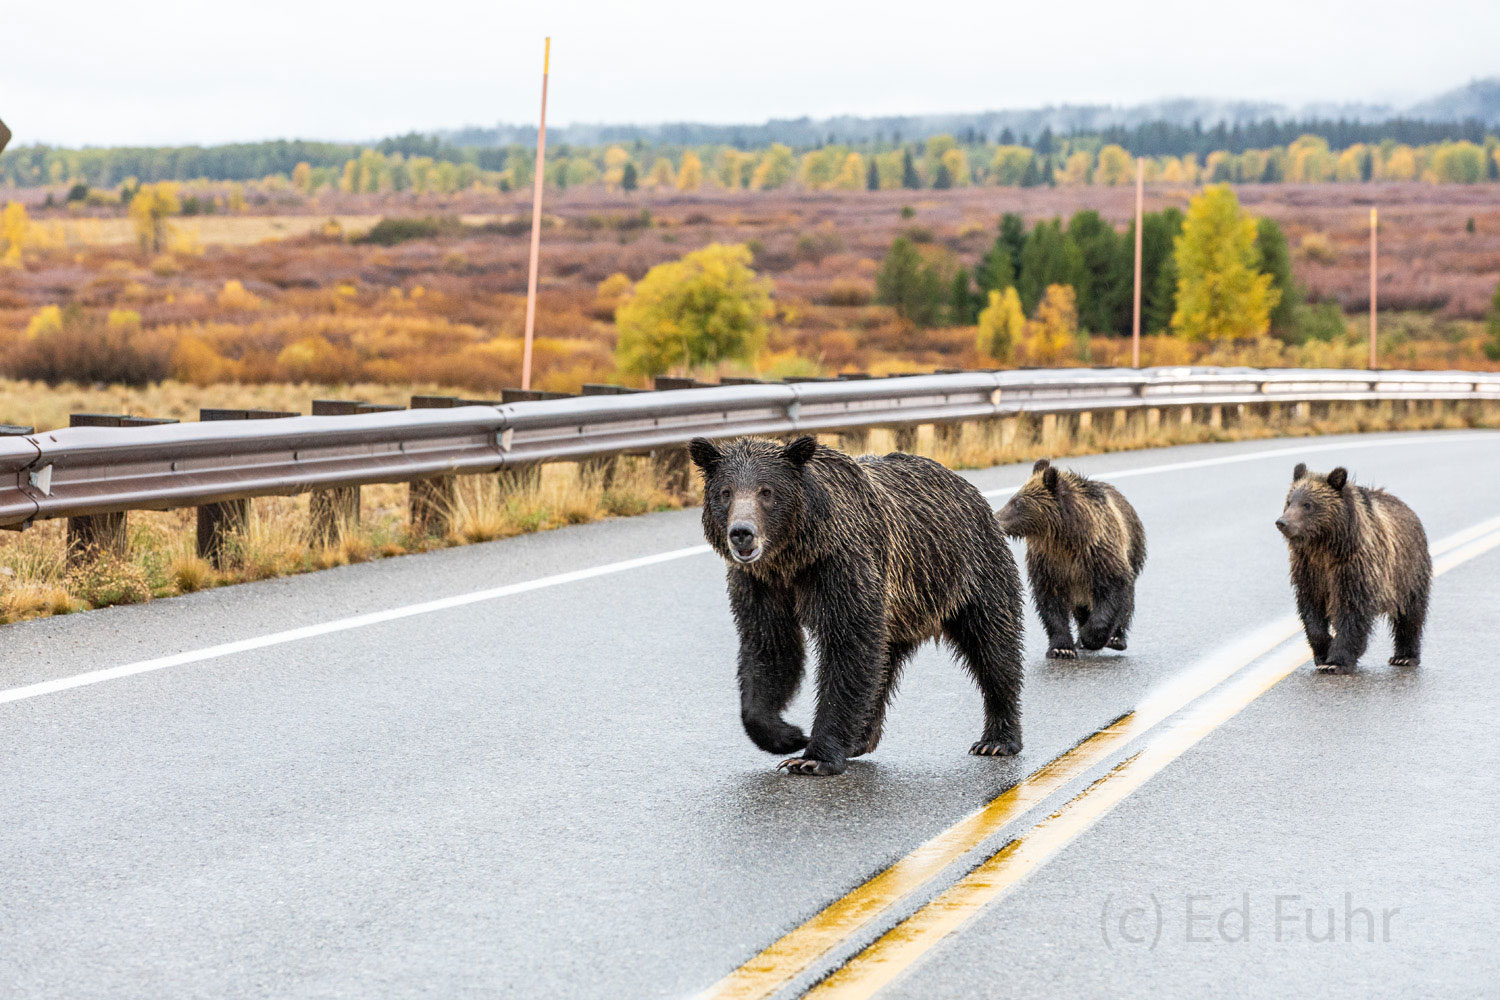 grizzly, bear, blondie, cubs, photo